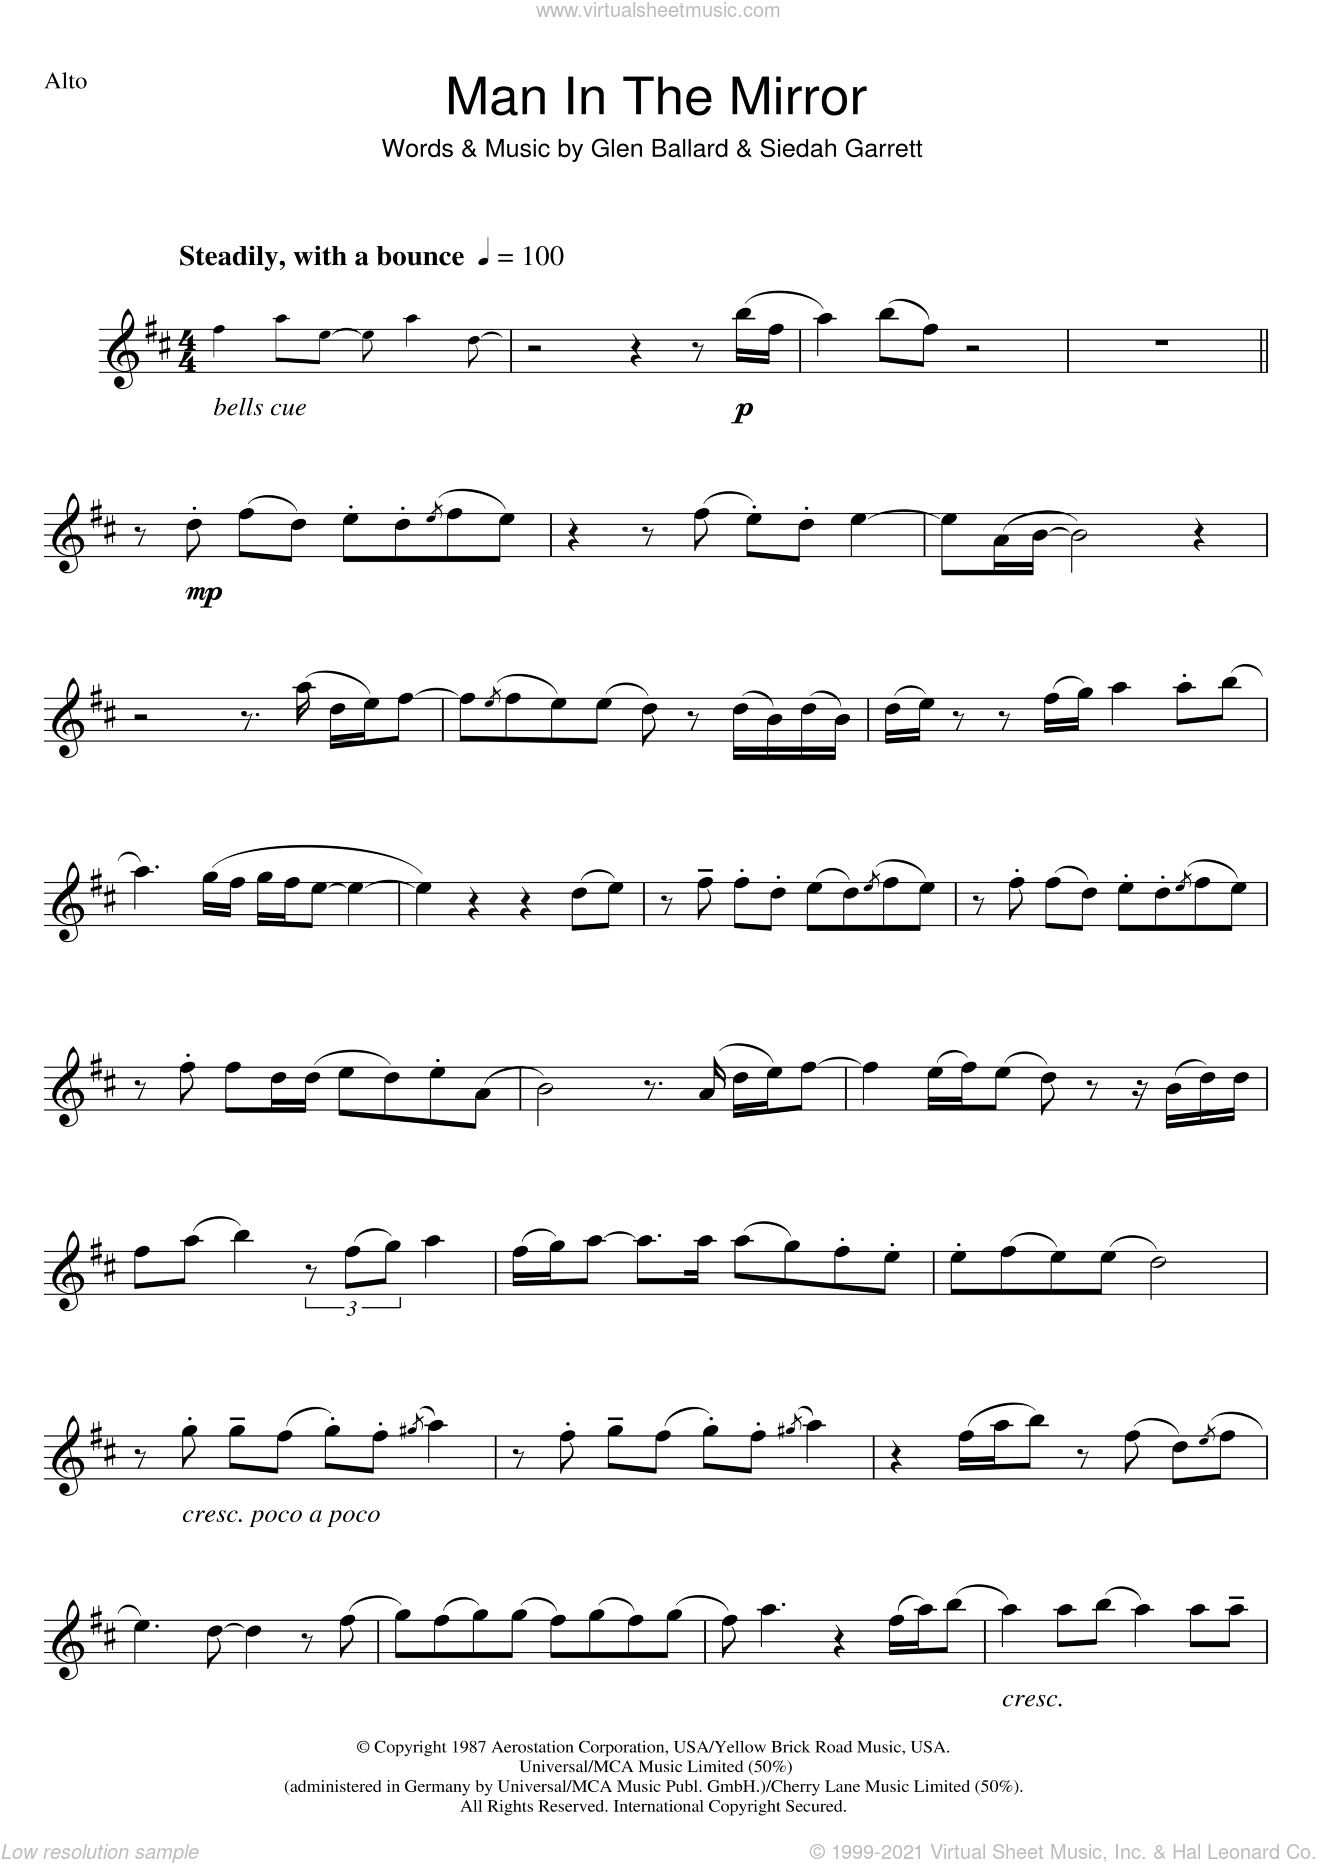 Man In The Mirror sheet music for alto saxophone solo by Michael Jackson, Glen Ballard and Siedah Garrett, intermediate skill level